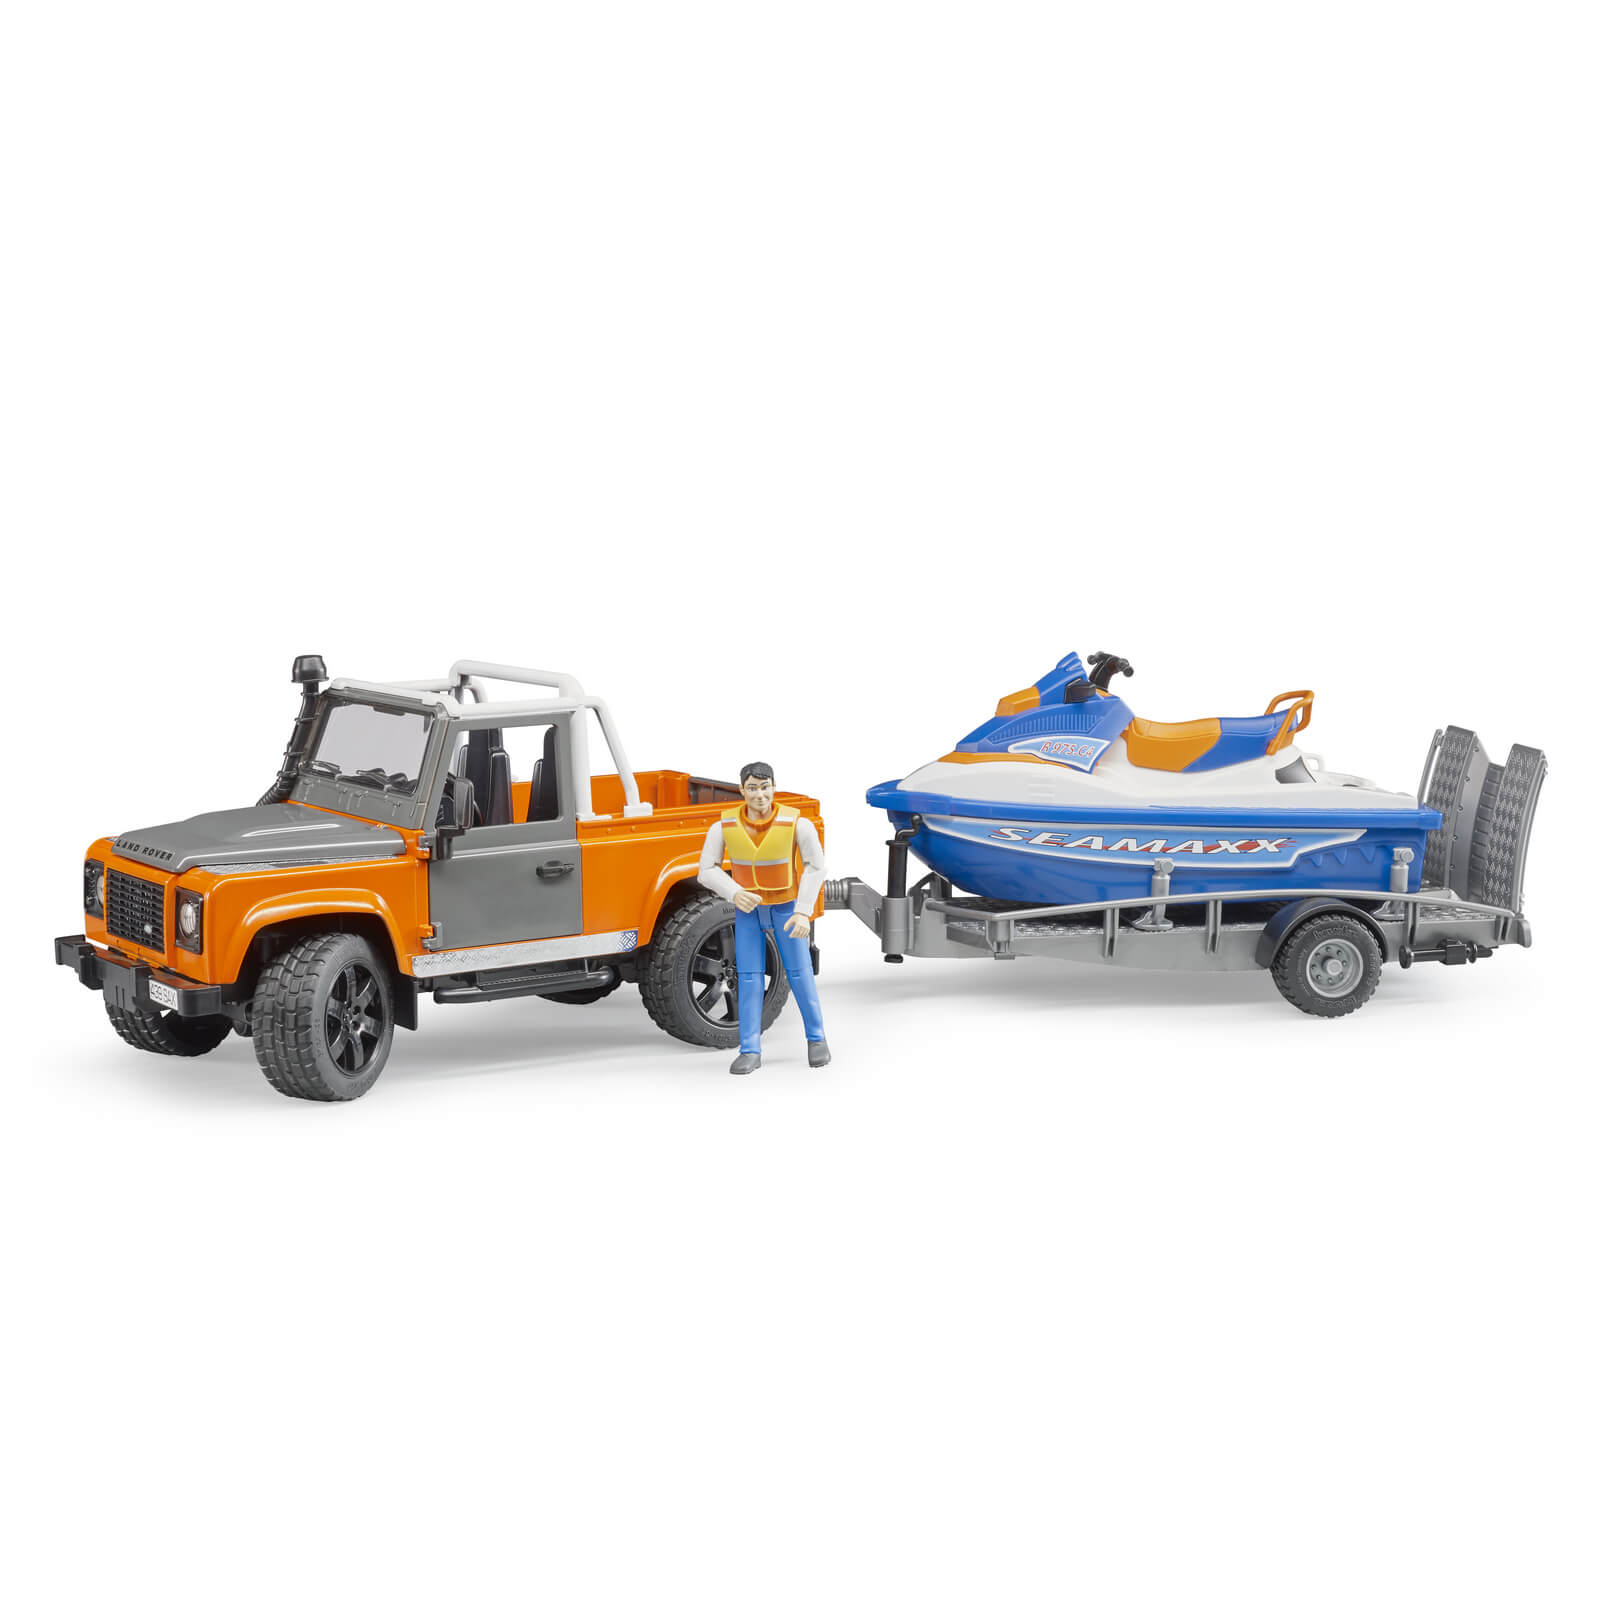 Bruder Personal Water Craft with Driver Vehicles-Toys Baby